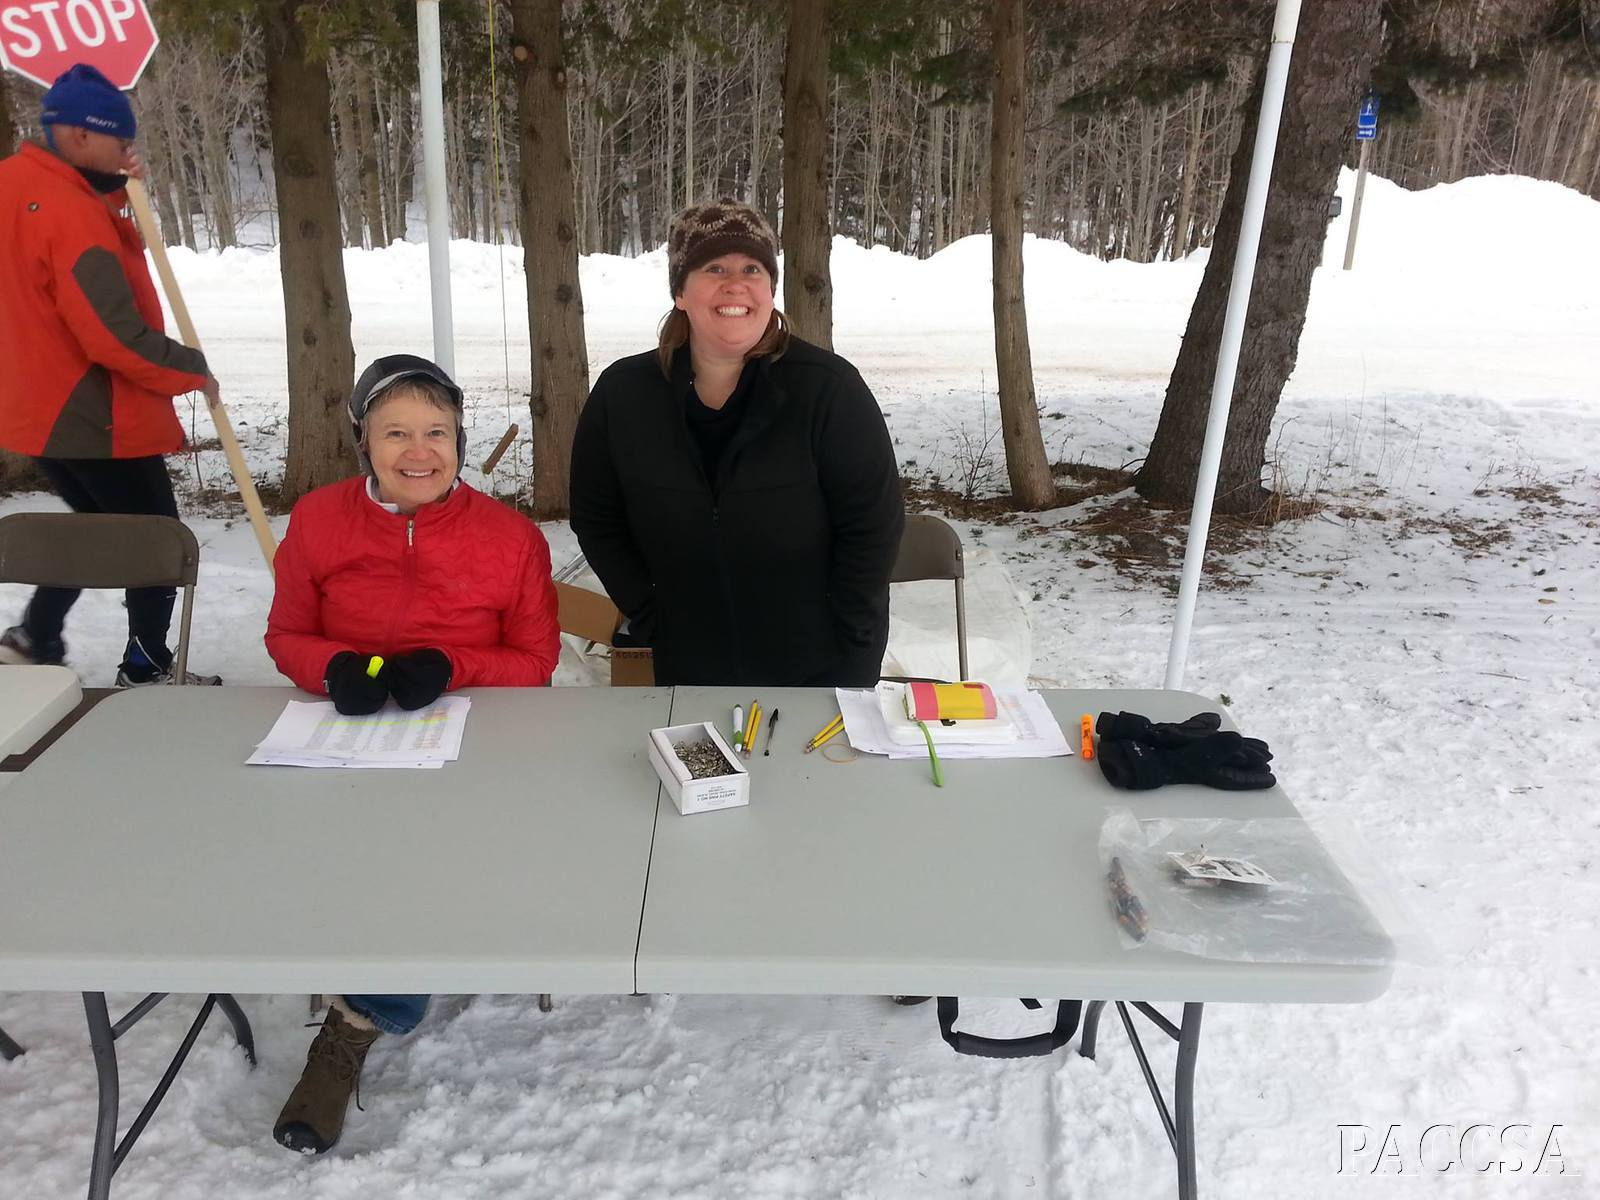 "PA Nordic Championship - Wilderness Lodge, PA - <span class=""date-display-single"" property=""dc:date"" datatype=""xsd:dateTime"" content=""2014-02-02T00:00:00-05:00"">02 Feb 2014</span> - Bruce Cox"